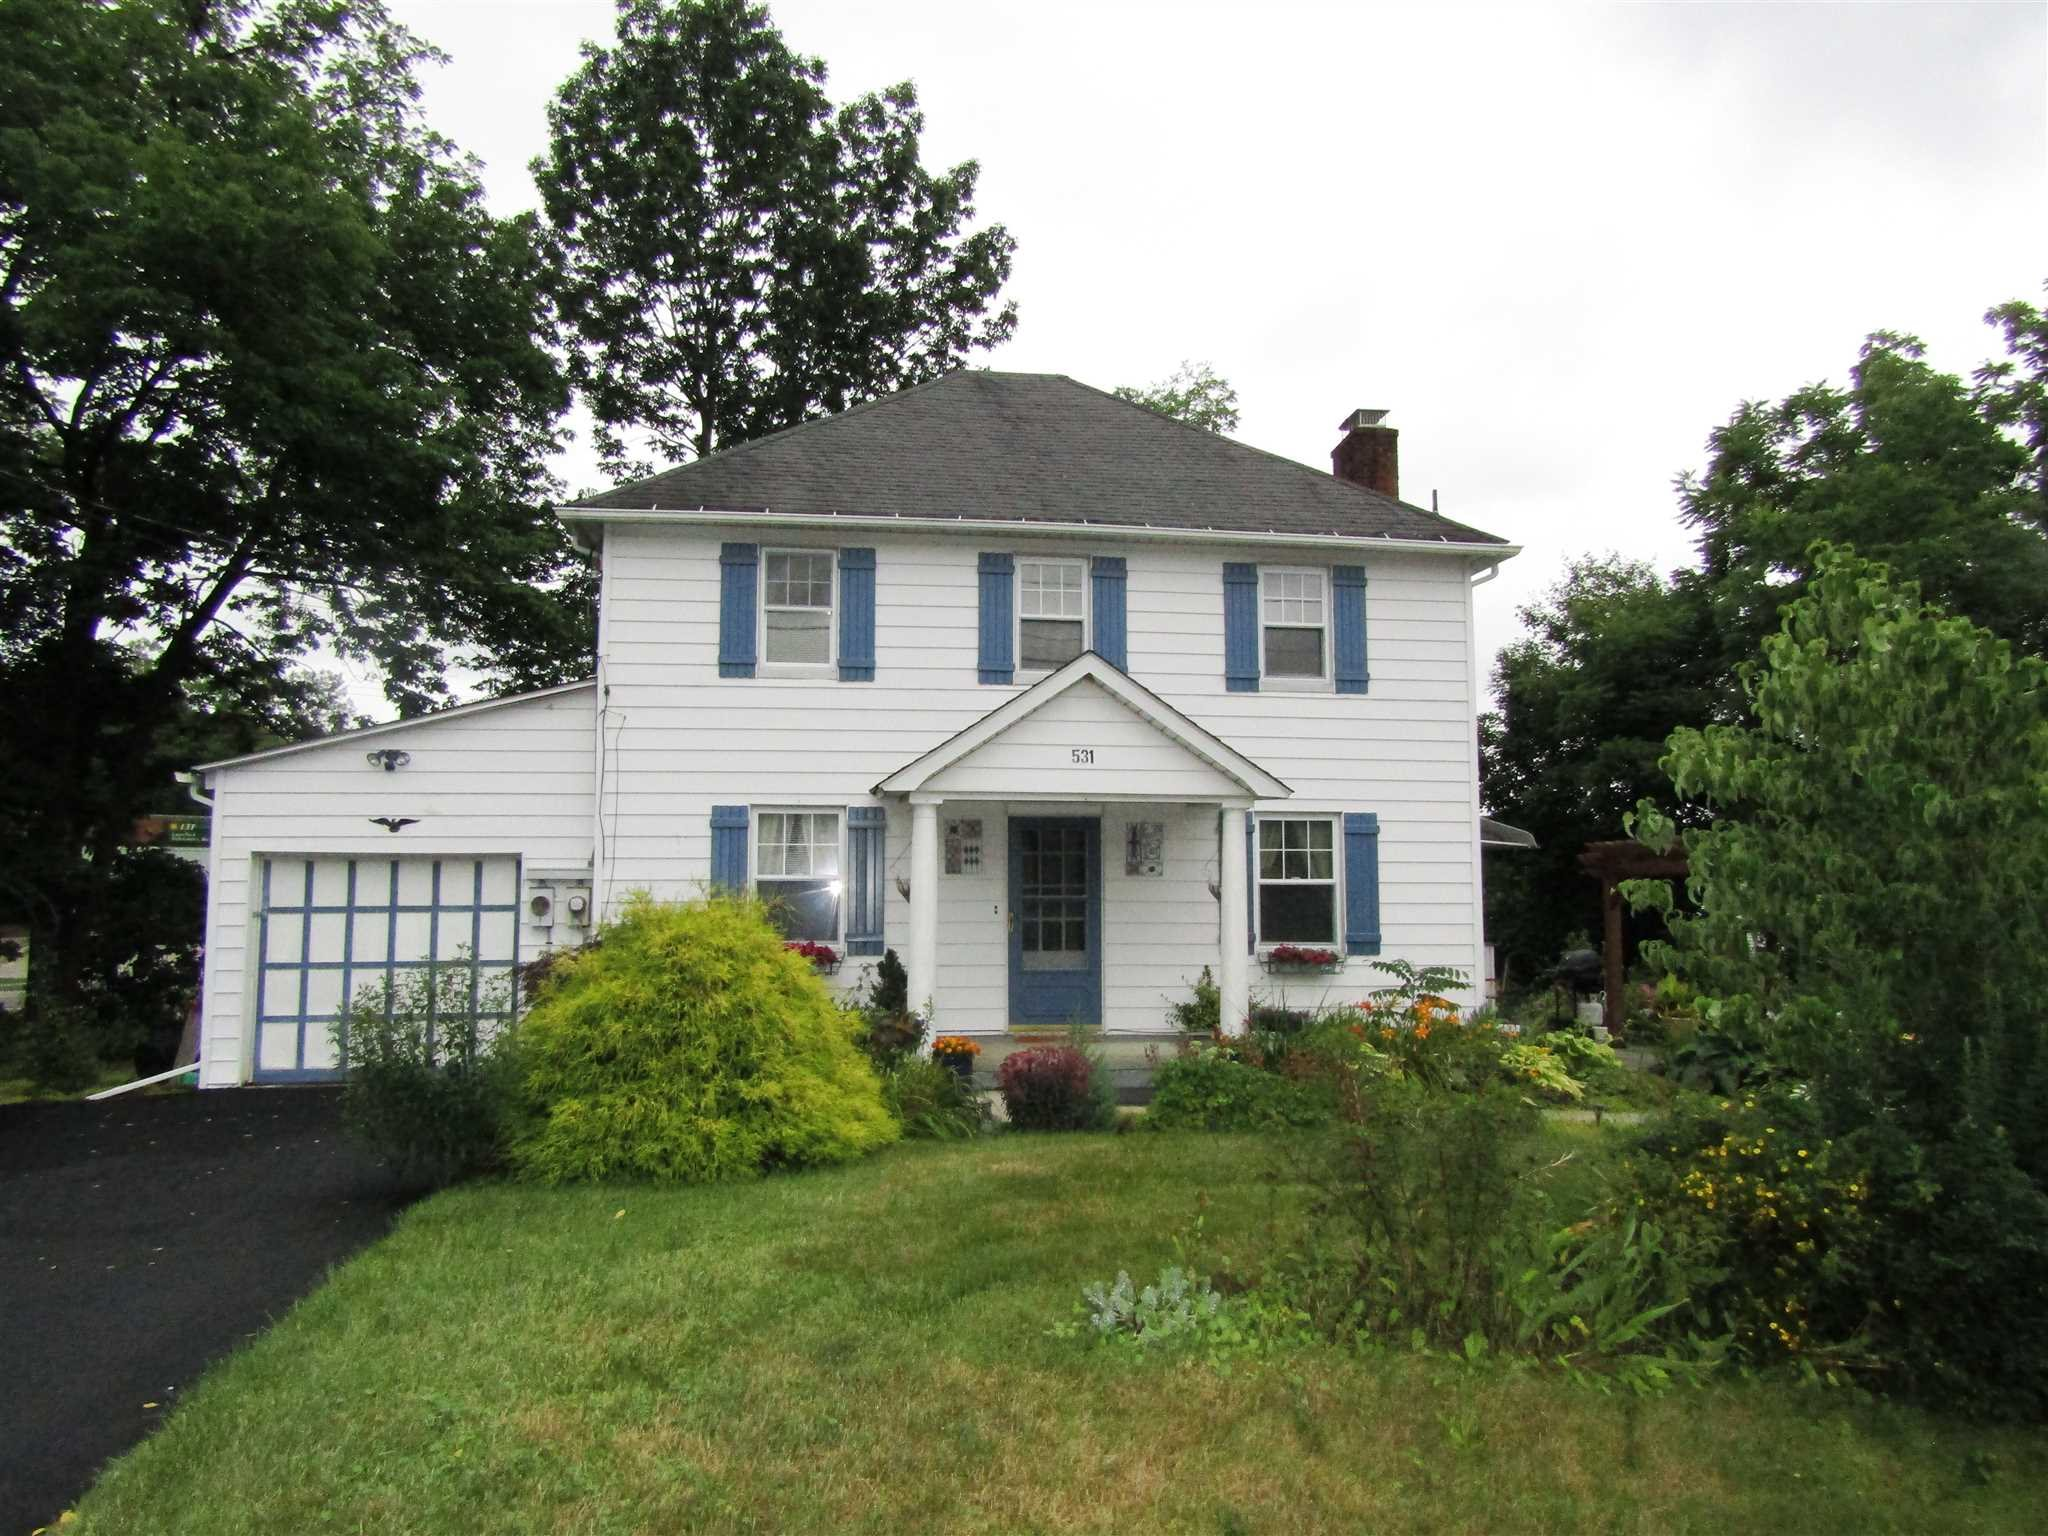 Single Family Home for Sale at 531 FISHKILL Road 531 FISHKILL Road Philipstown, New York 10516 United States